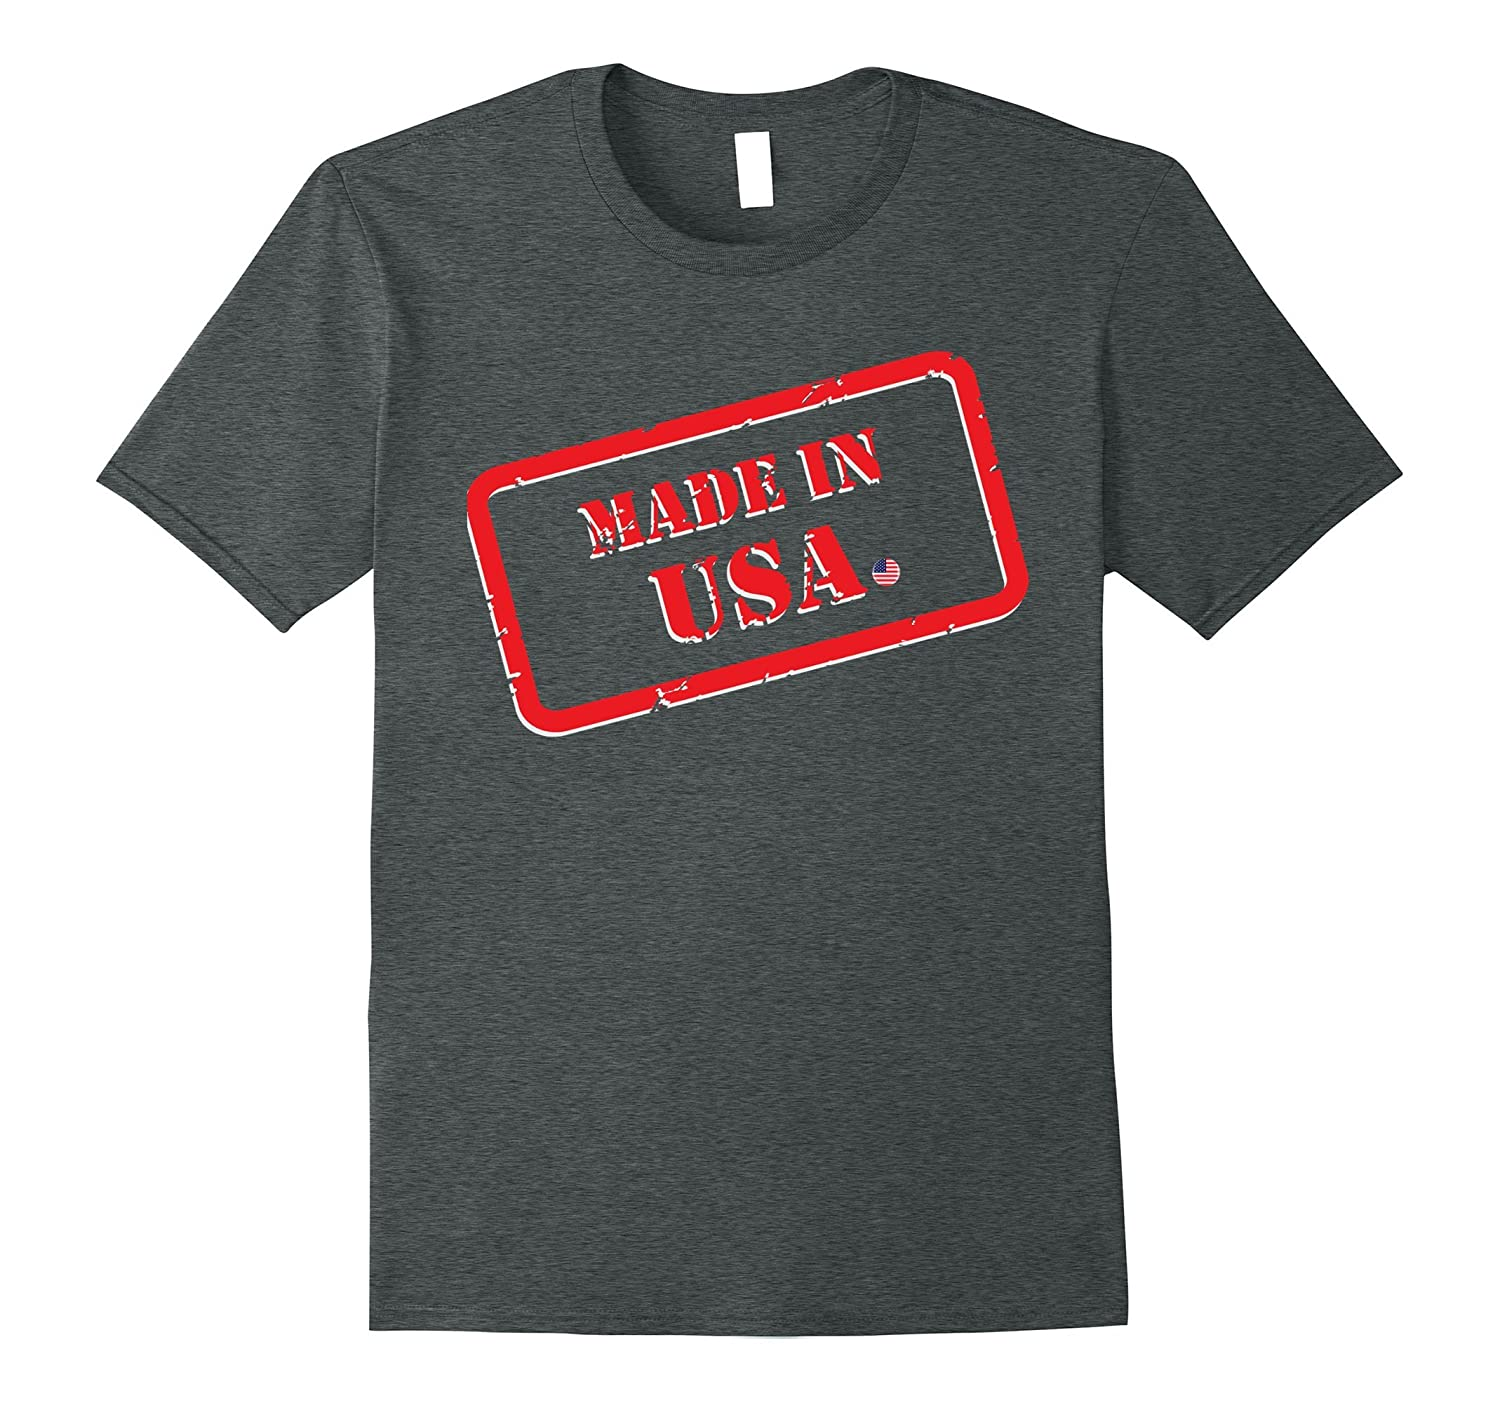 Made in USA t shirt/Veteran's day tshirt-Art